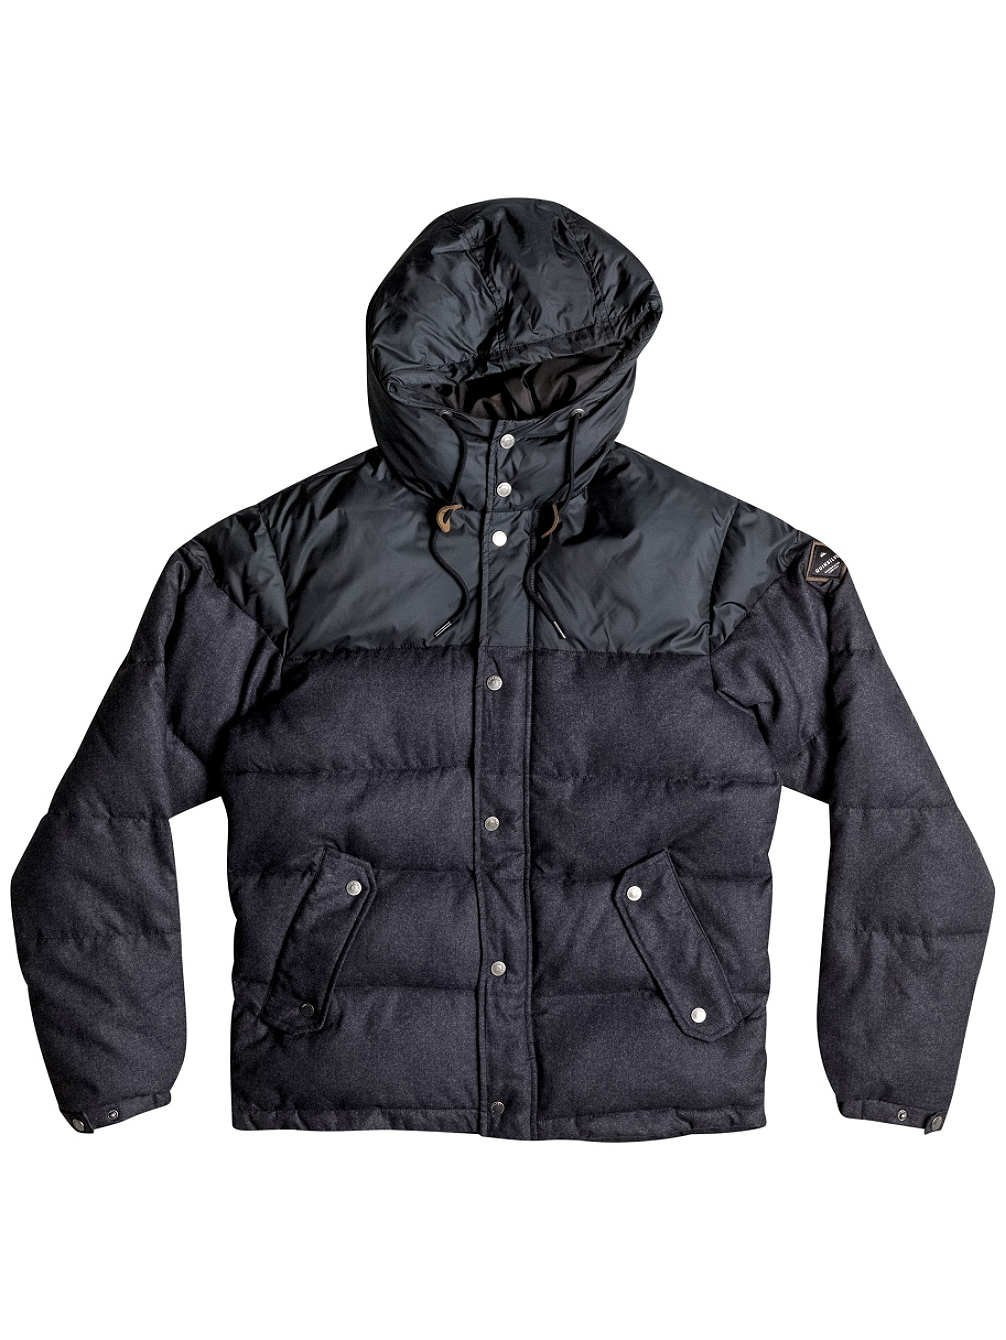 Quiksilver Men's Wool More Jackets